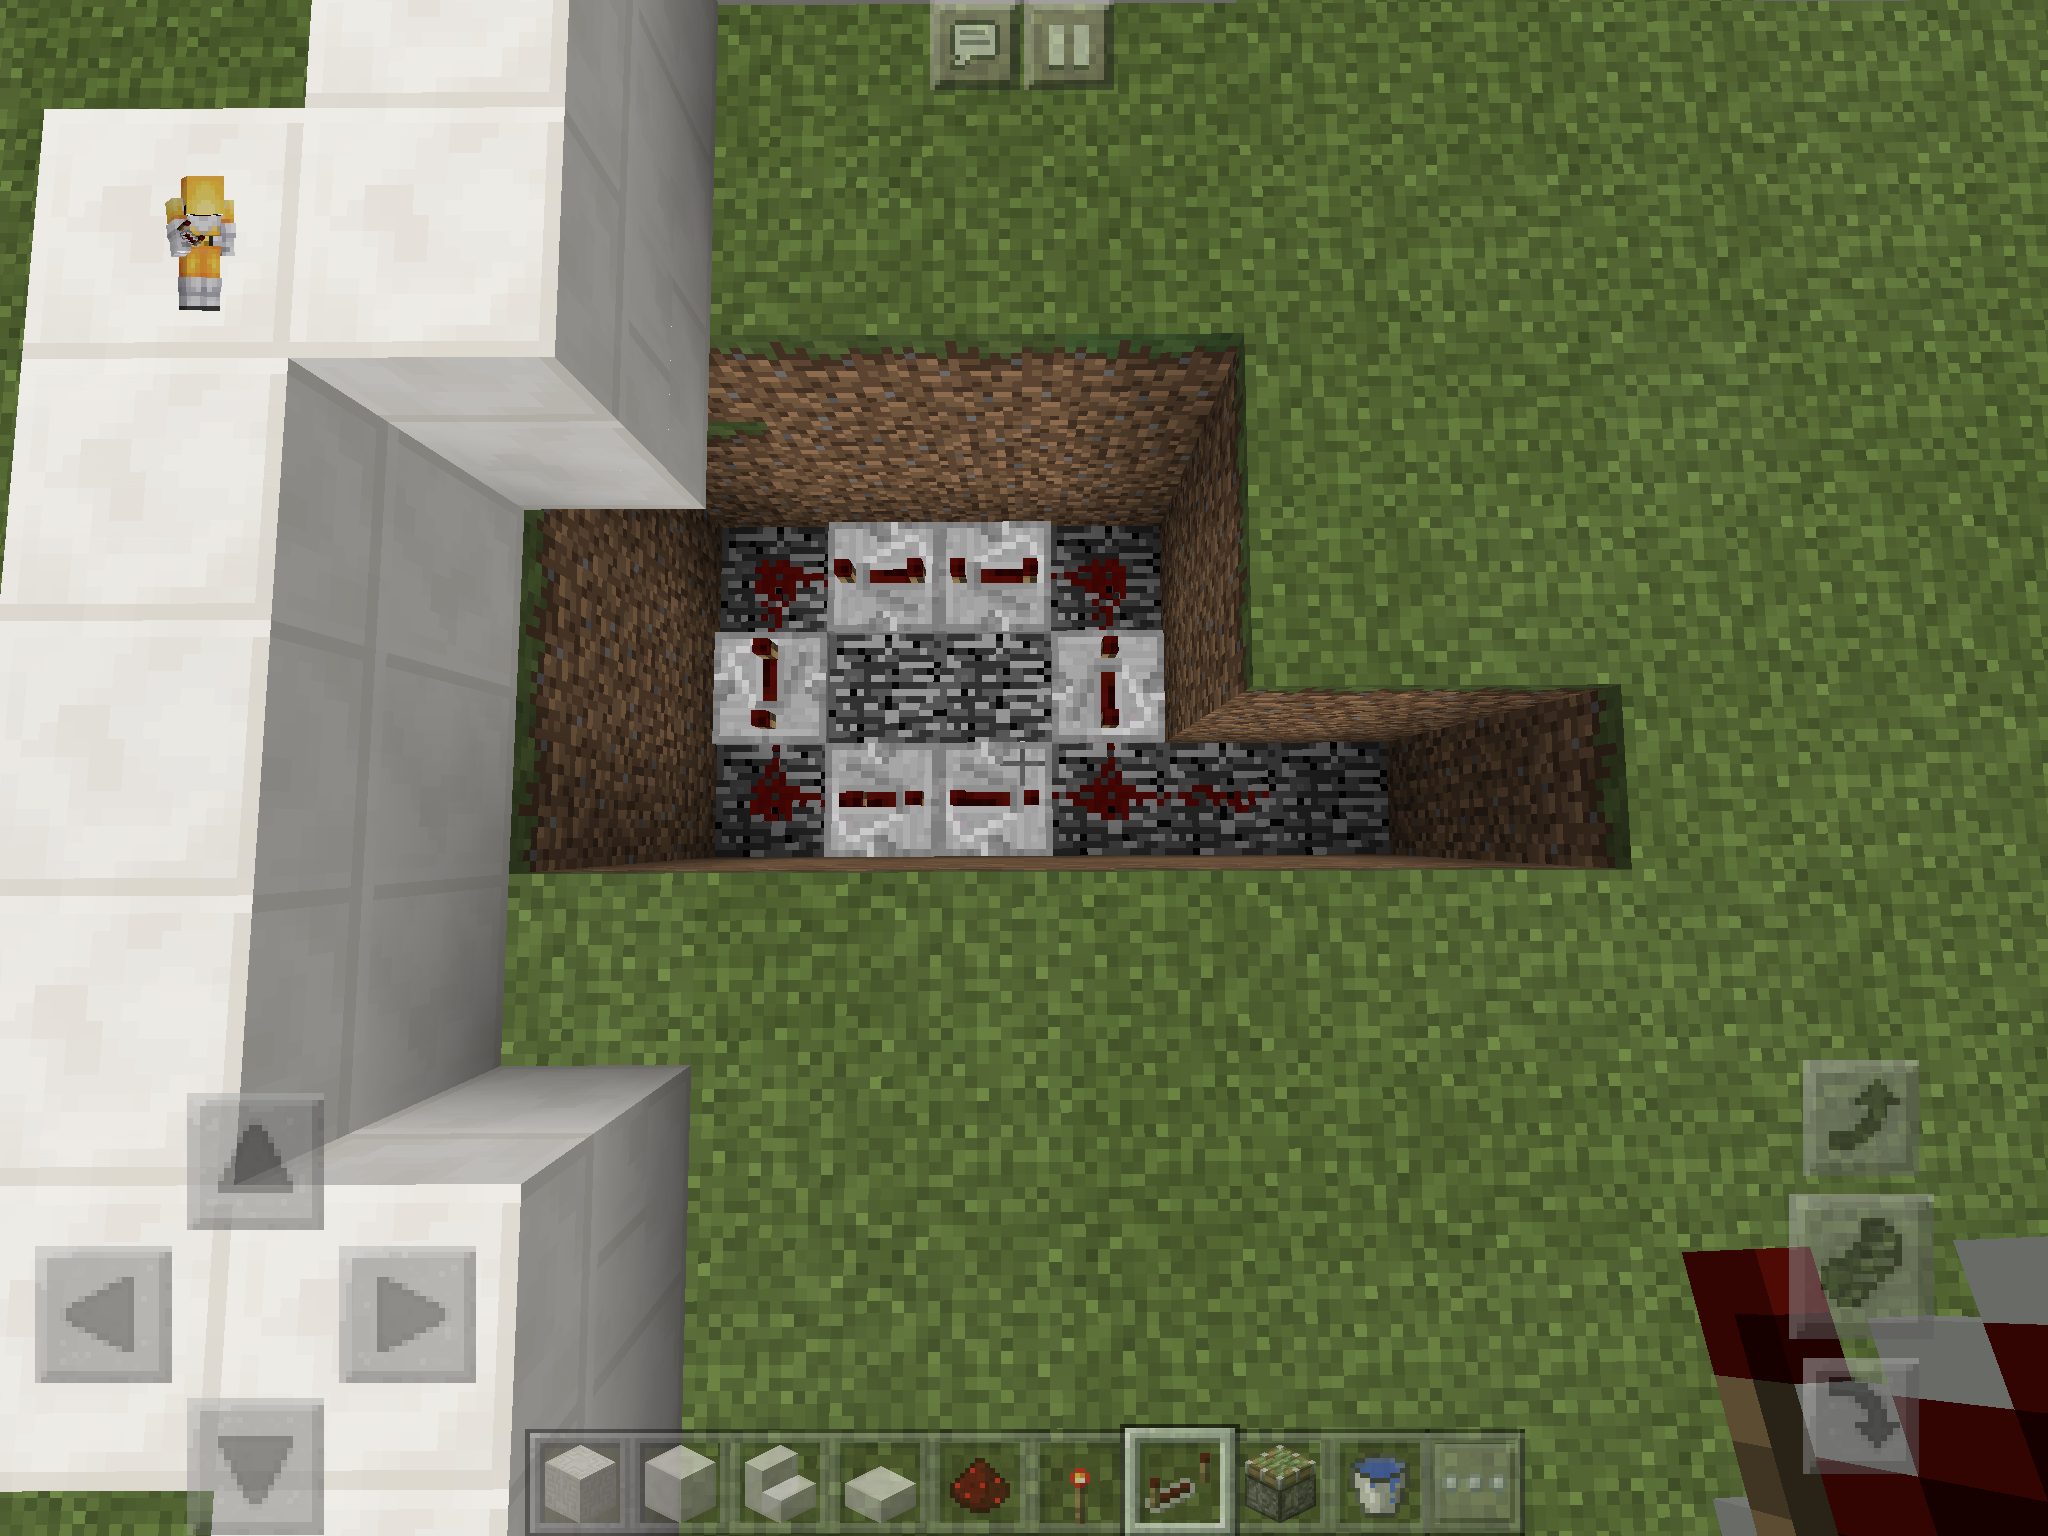 Picture of Redstone Pit and Redstone